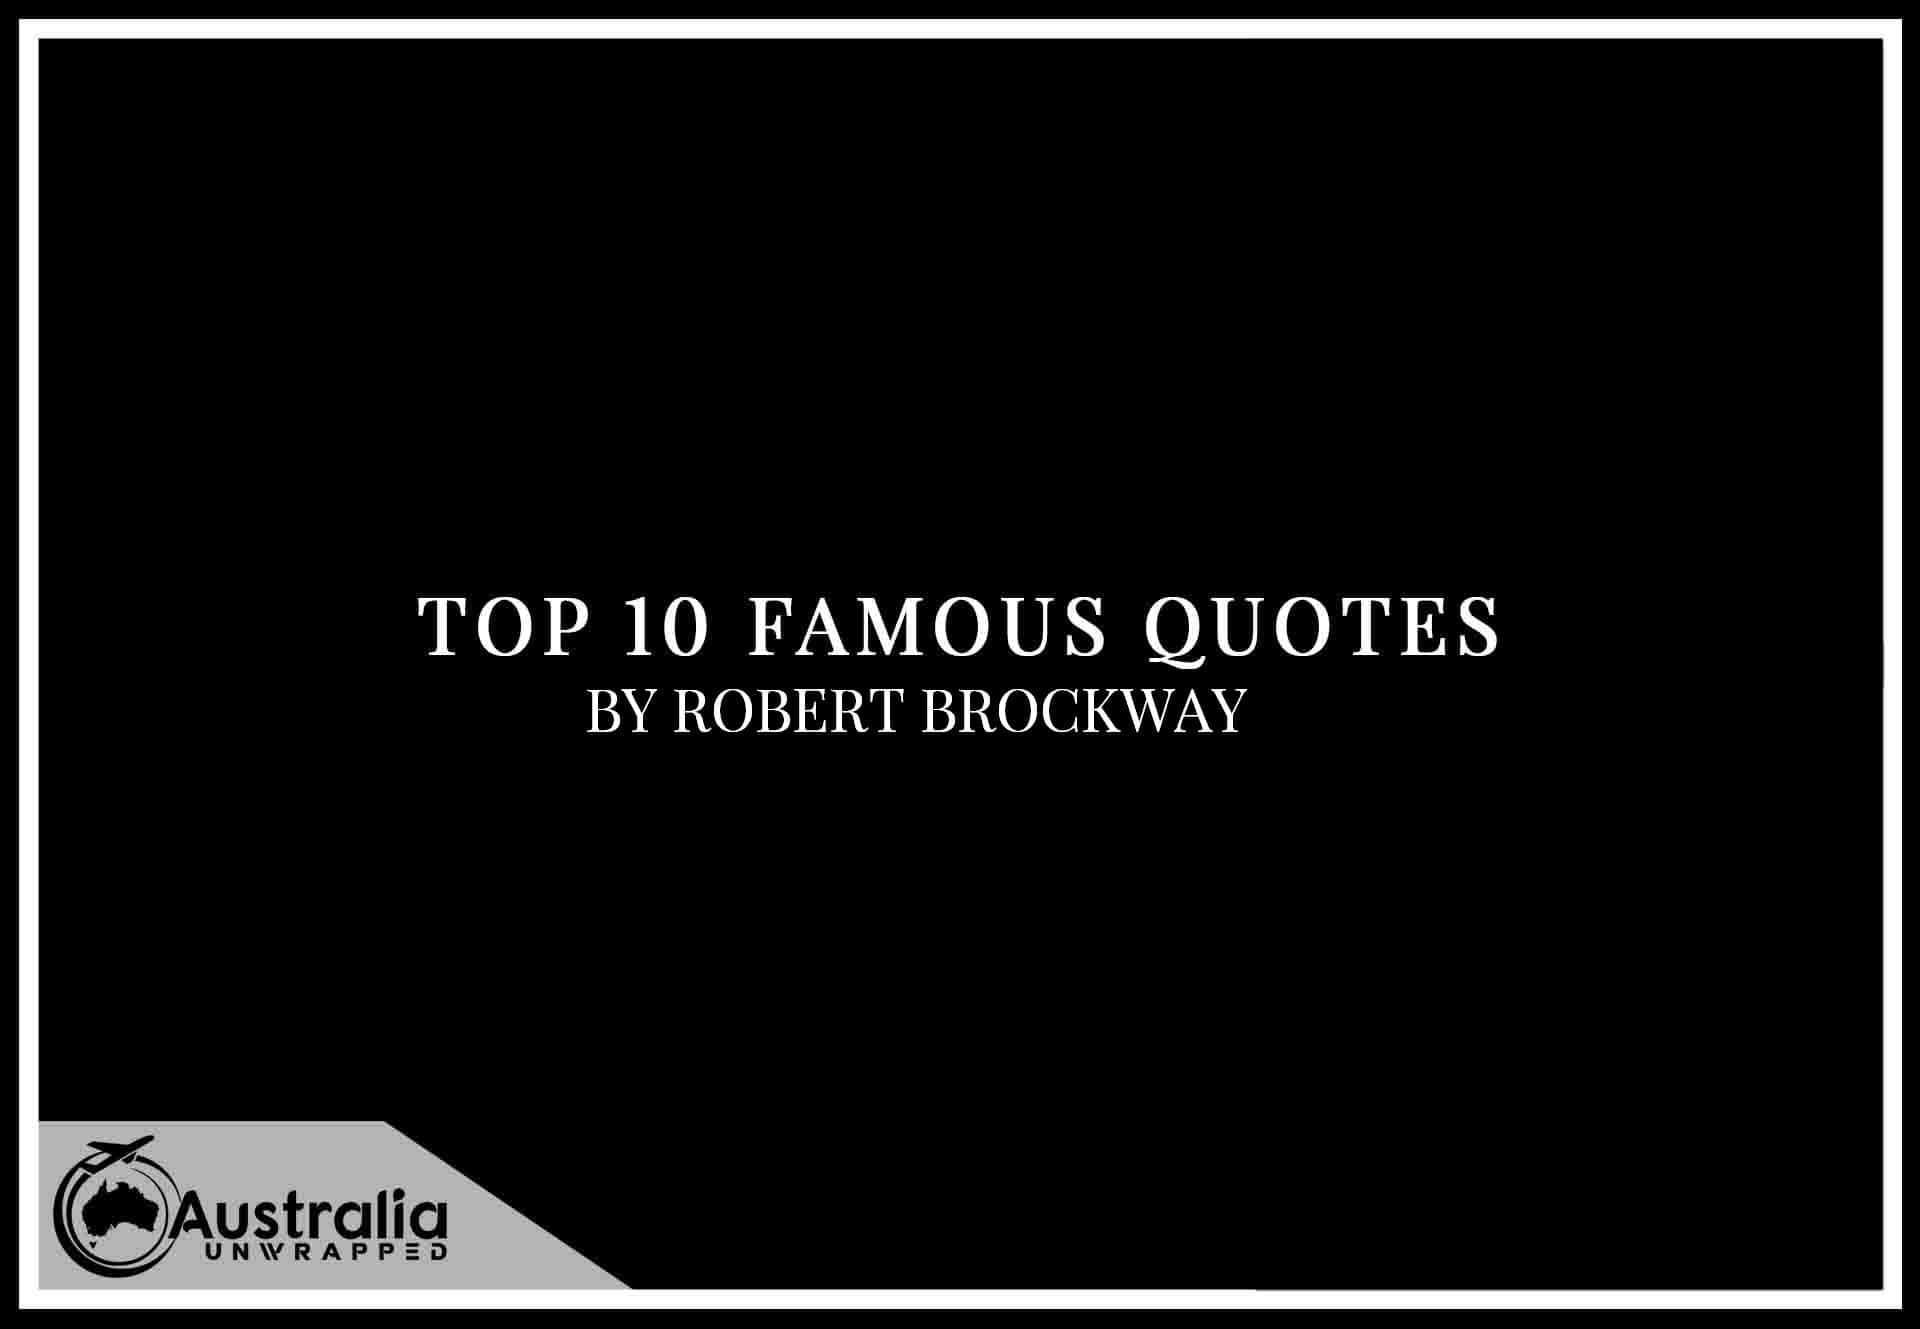 Top 10 Famous Quotes by Author Robert Brockway